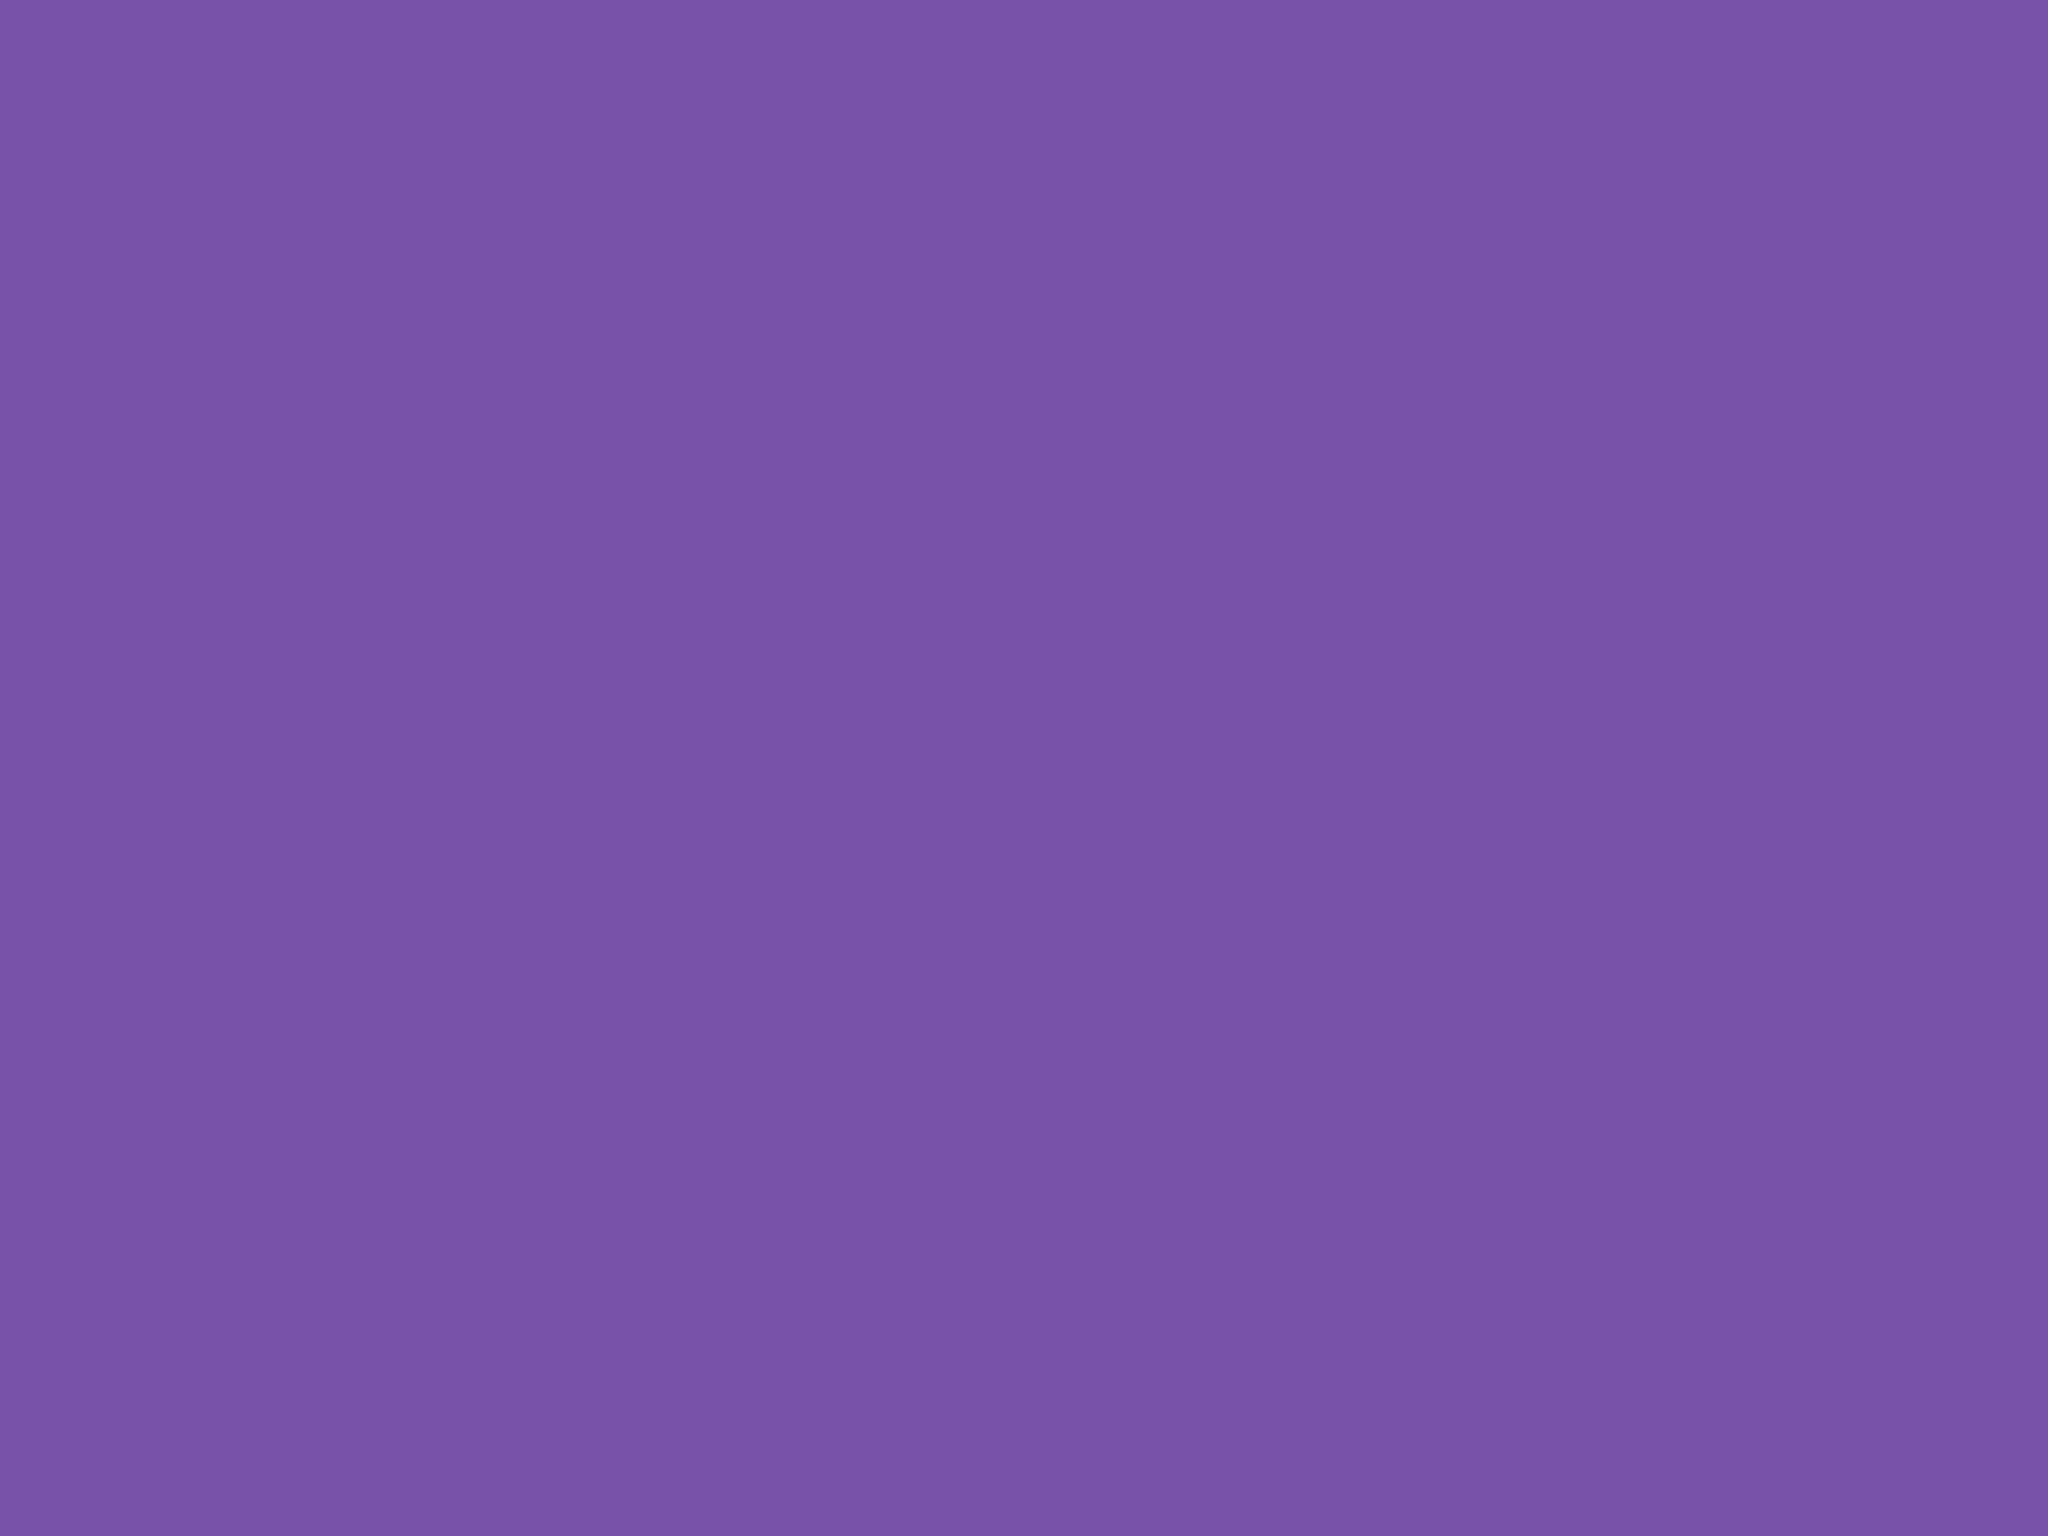 2048x1536 Royal Purple Solid Color Background